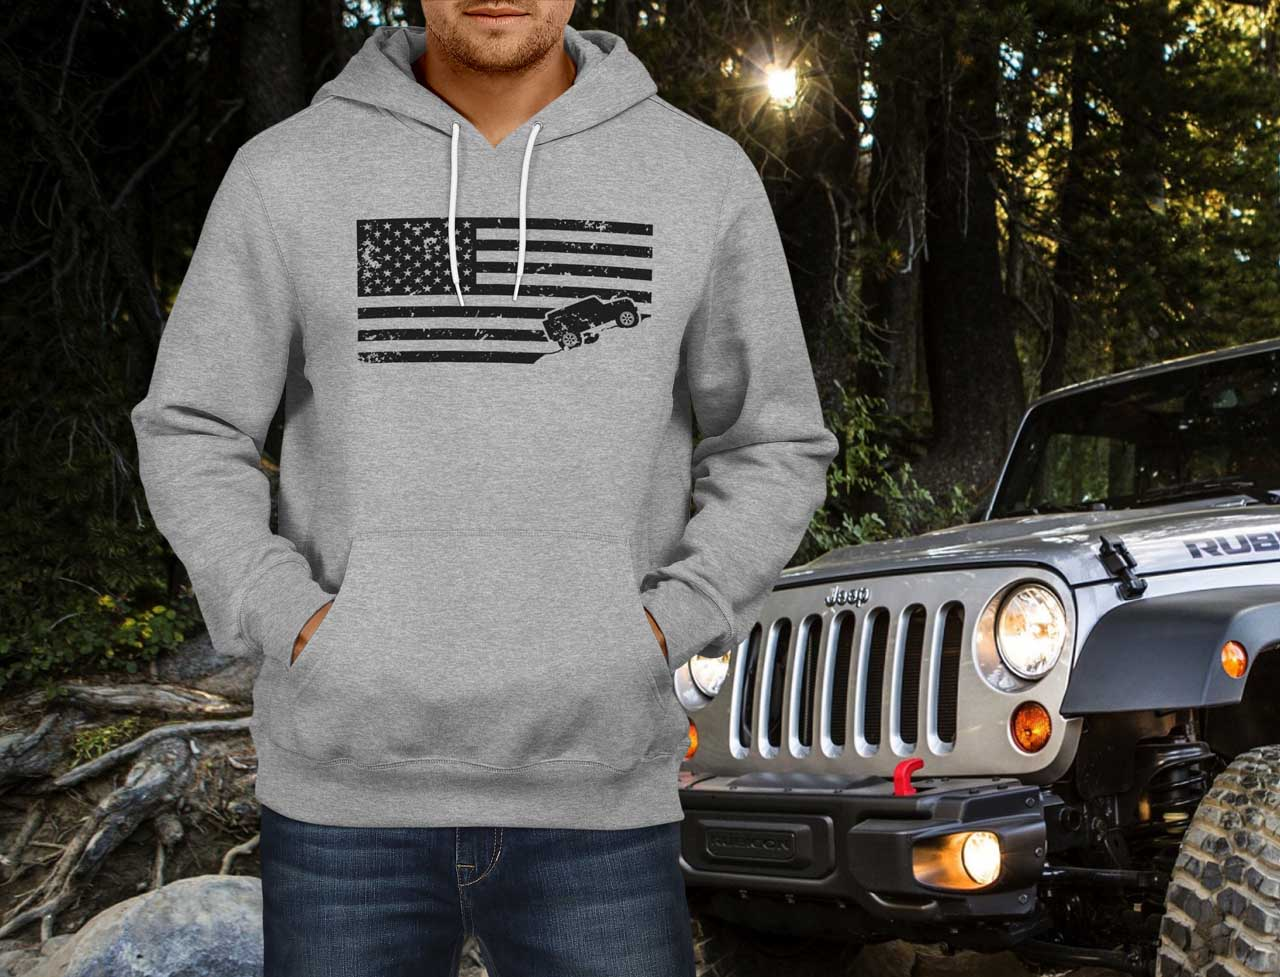 usa-distressed-sweatshirt-american-flag-jeeps-buggy-heathered-gray